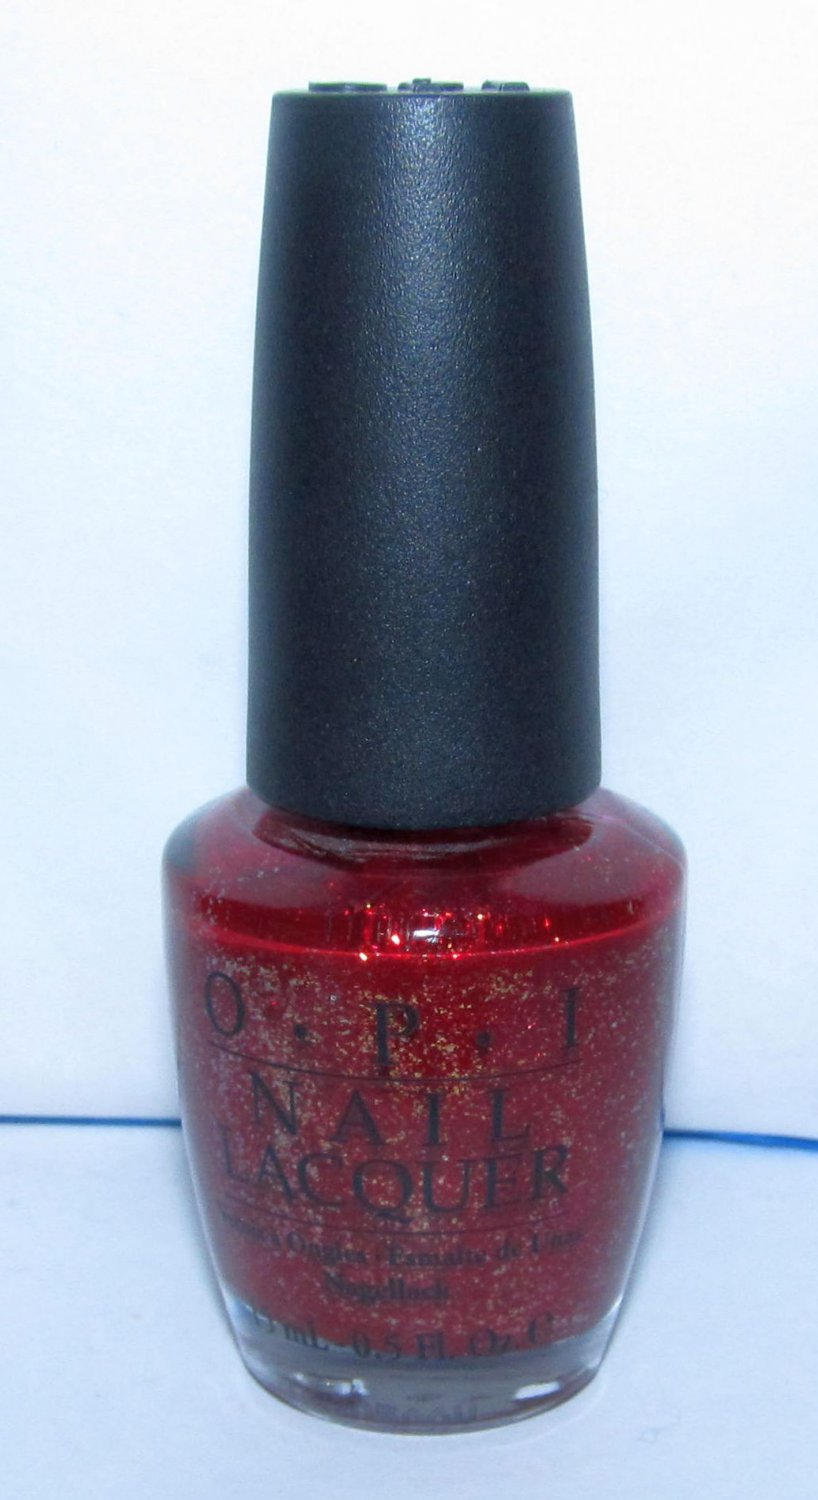 OPI Nail Polish - Smitten with Mittens HL A12 - NEW